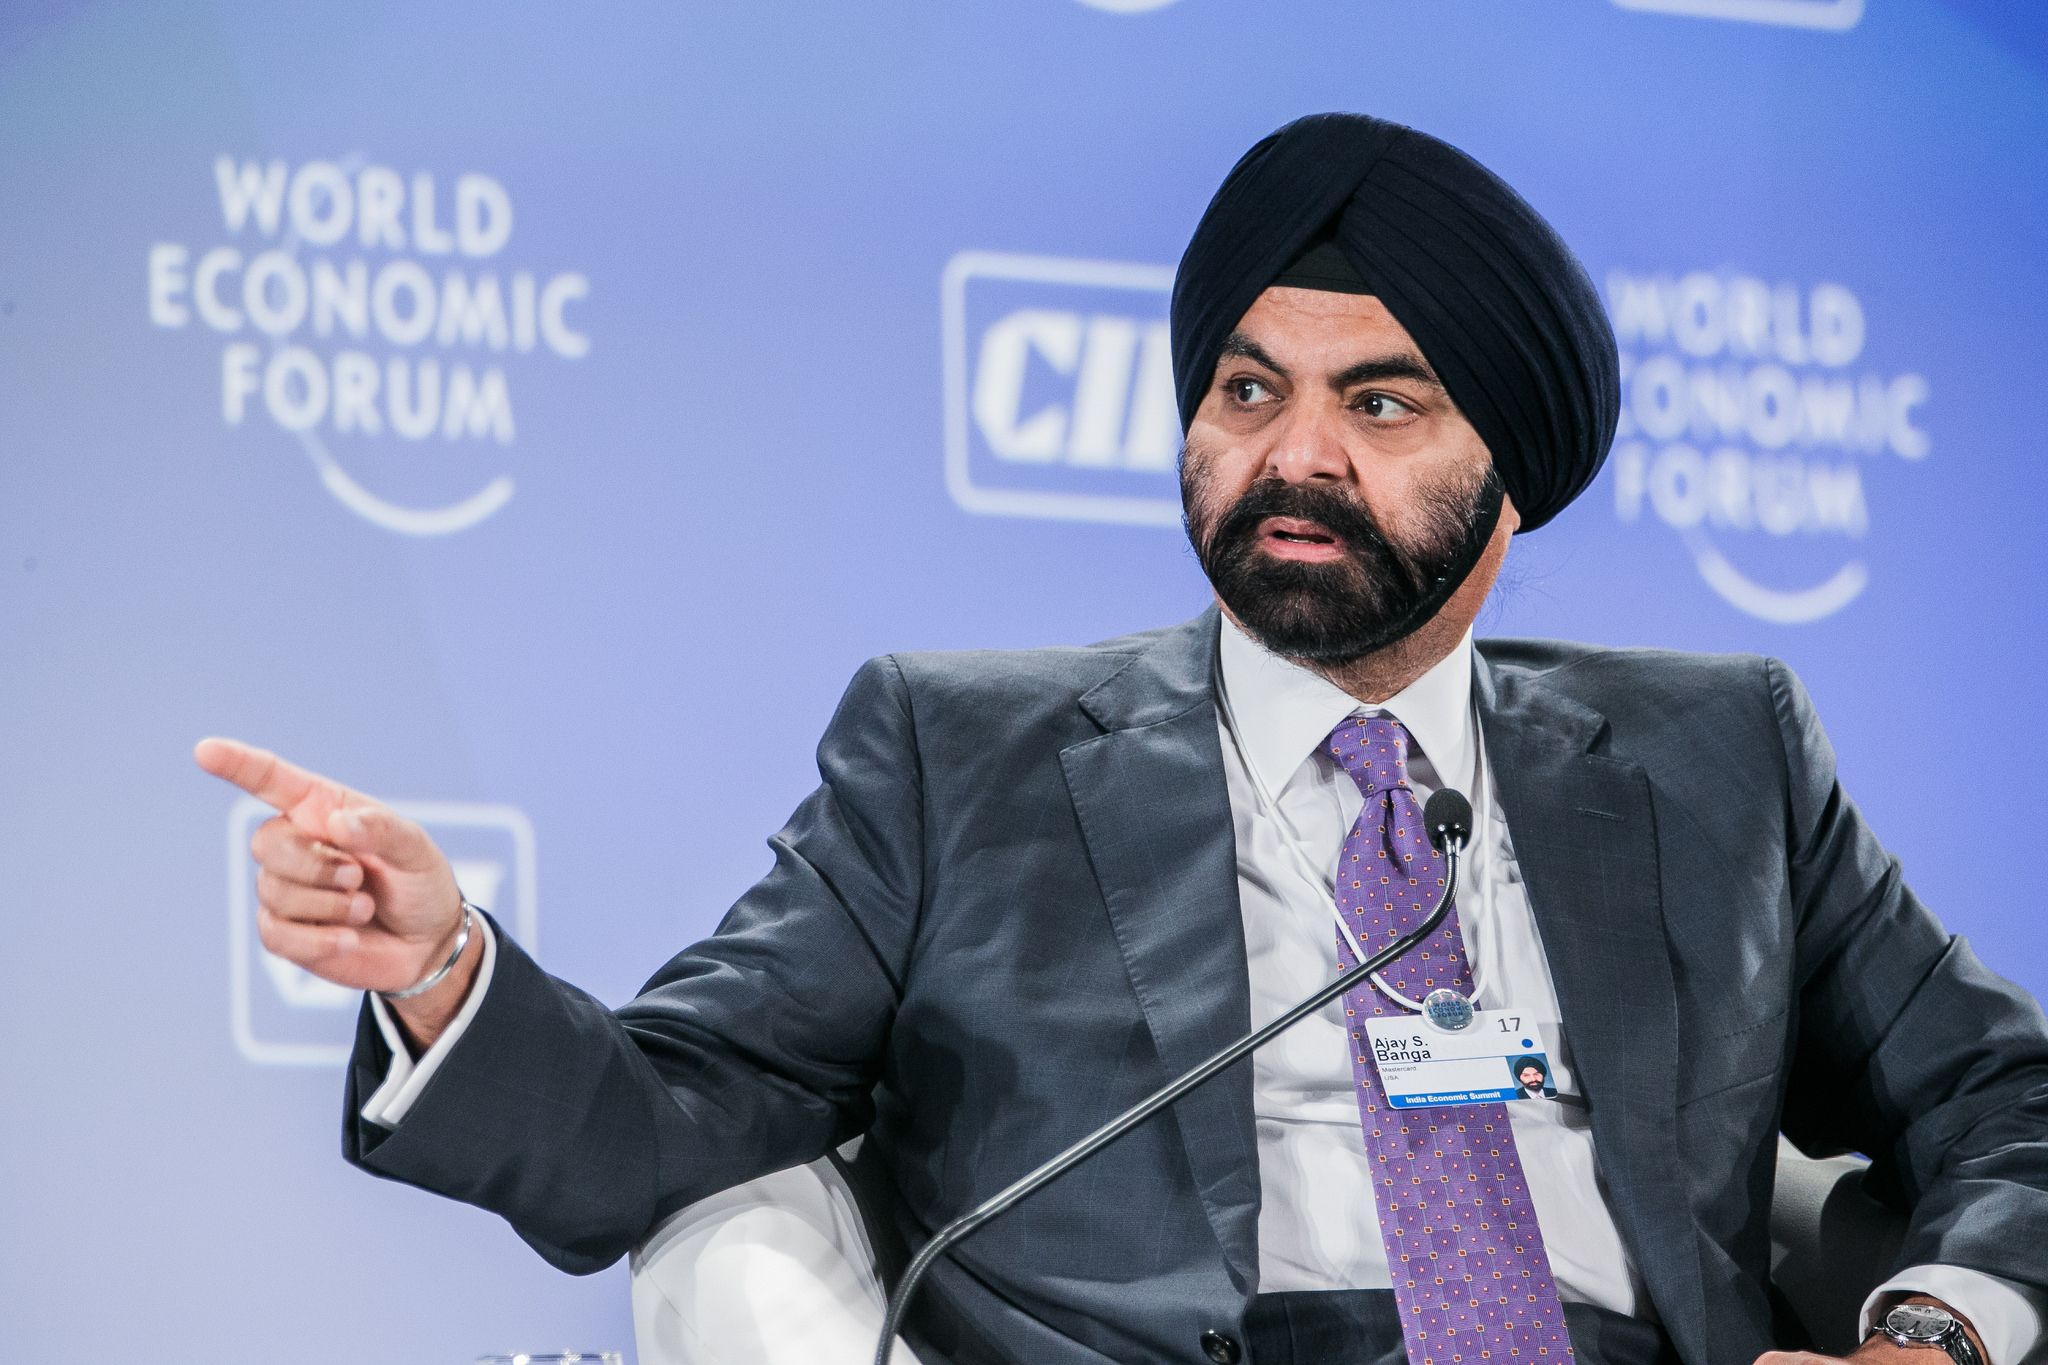 Bitcoin can't help bank the unbanked claims Mastercard CEO